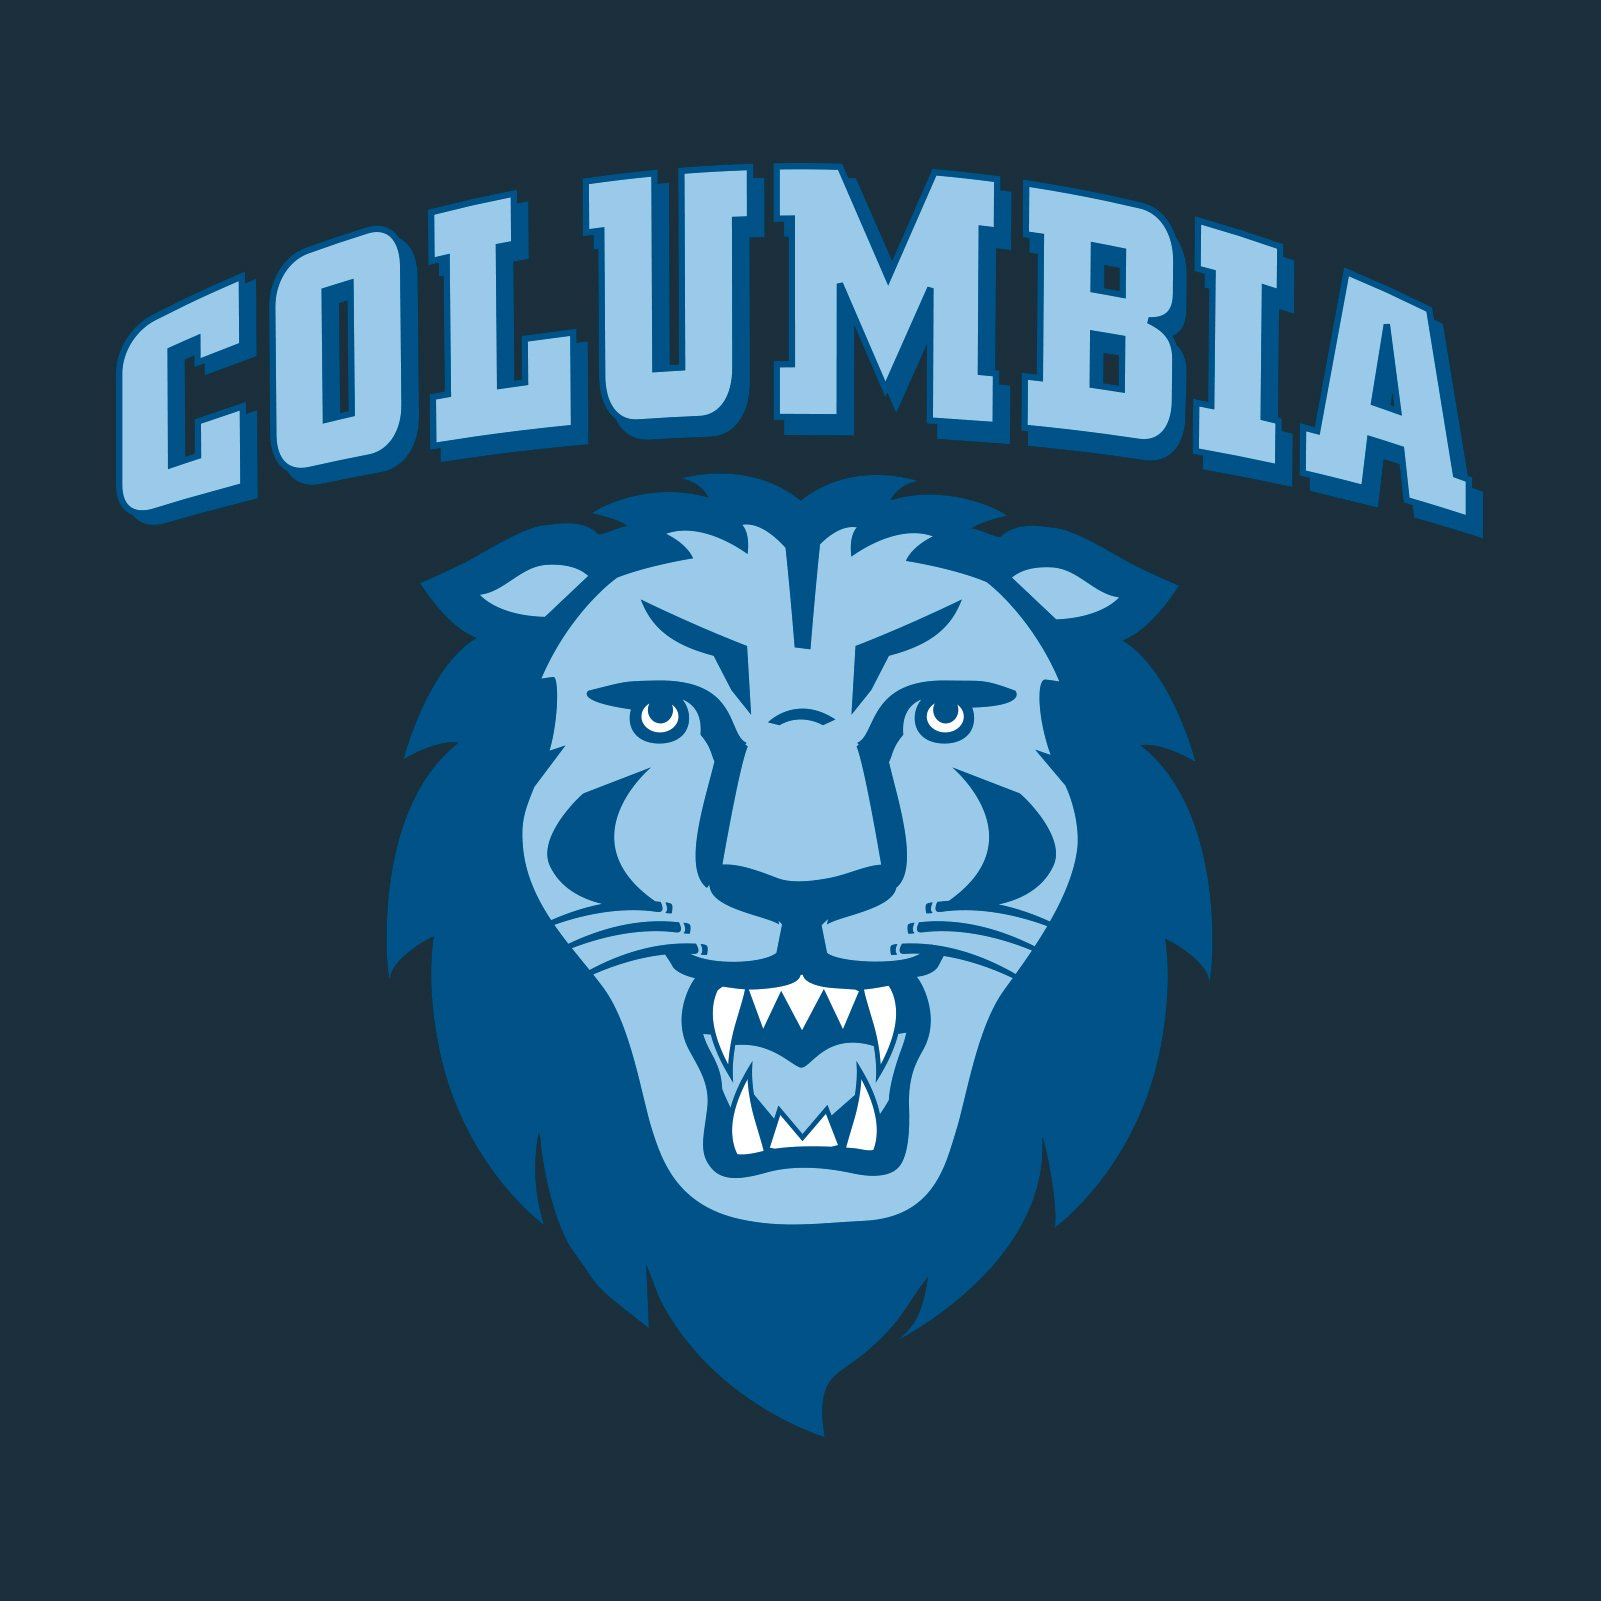 The logo for Columbia University which is a top school for those looking to up there rhodes scholarship acceptance rate